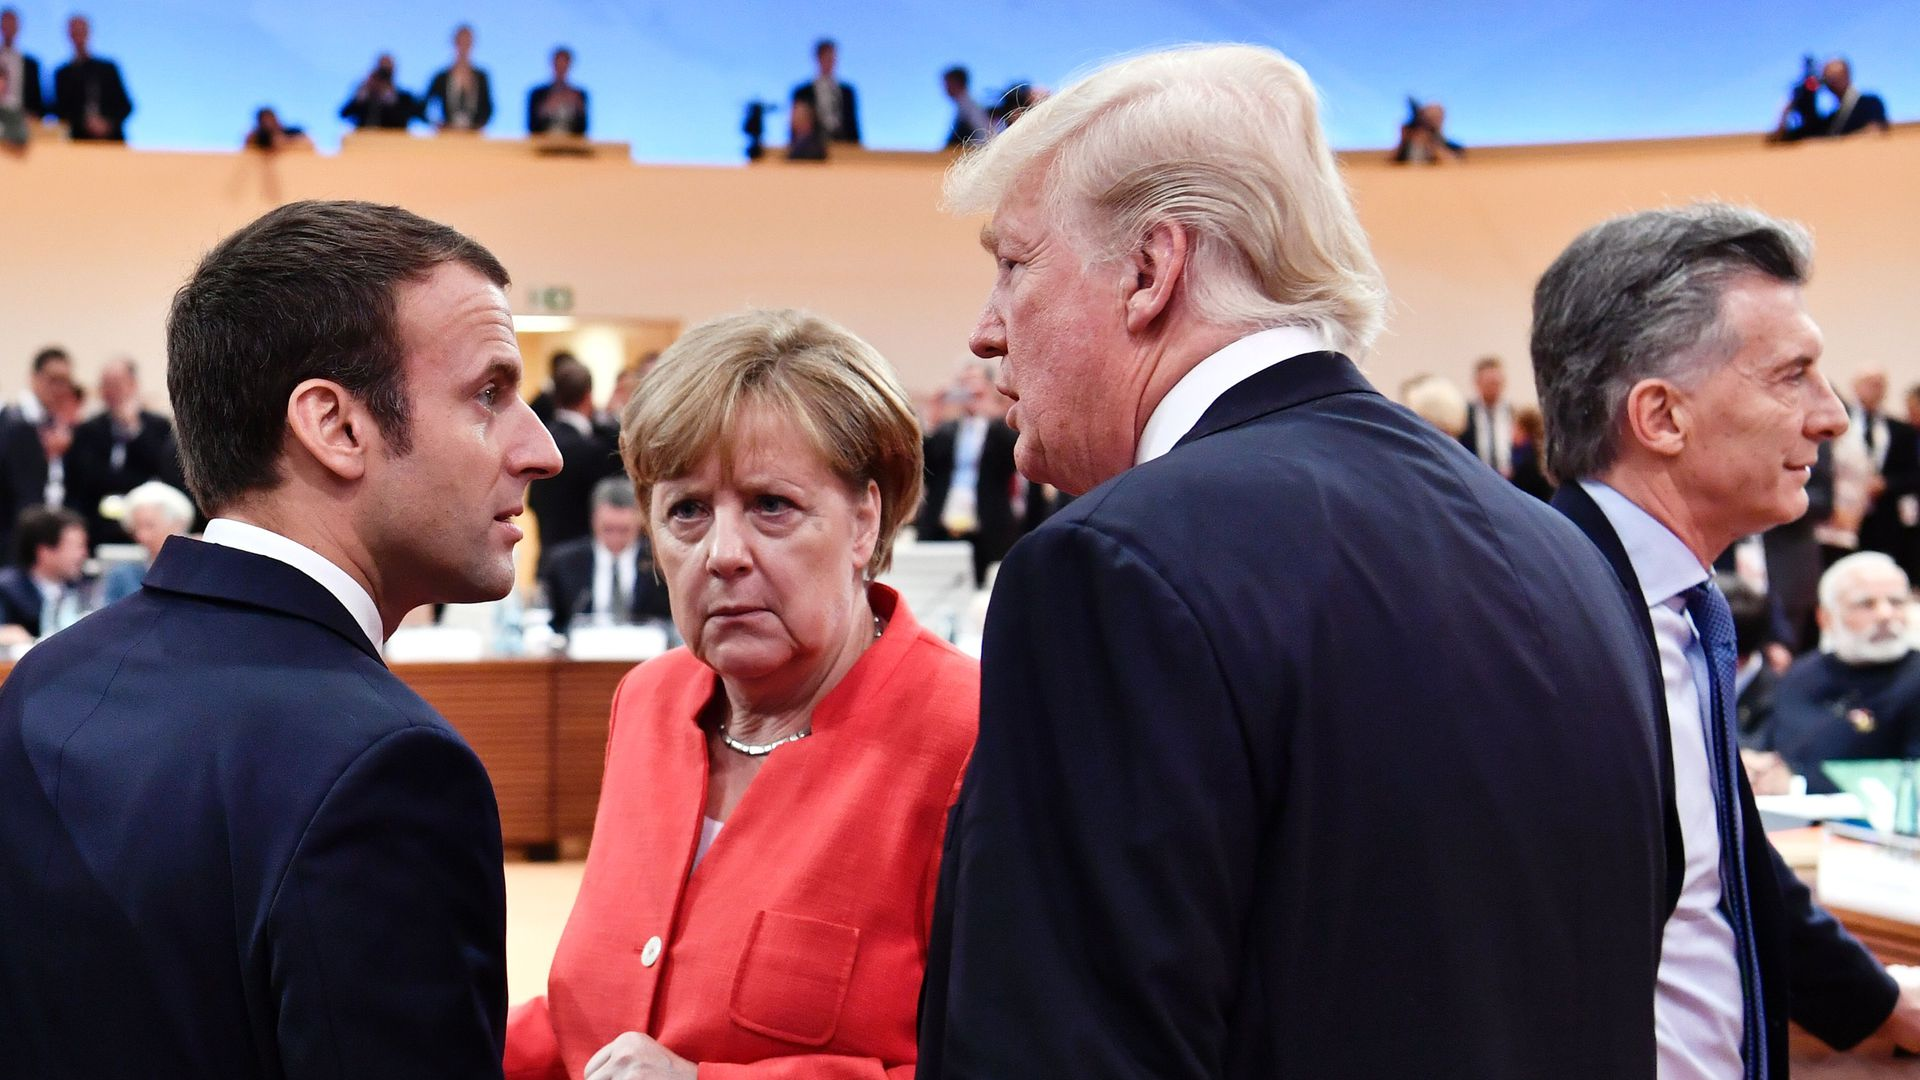 Emmanuel Macron, Angela Merkel, and Donald Trump.